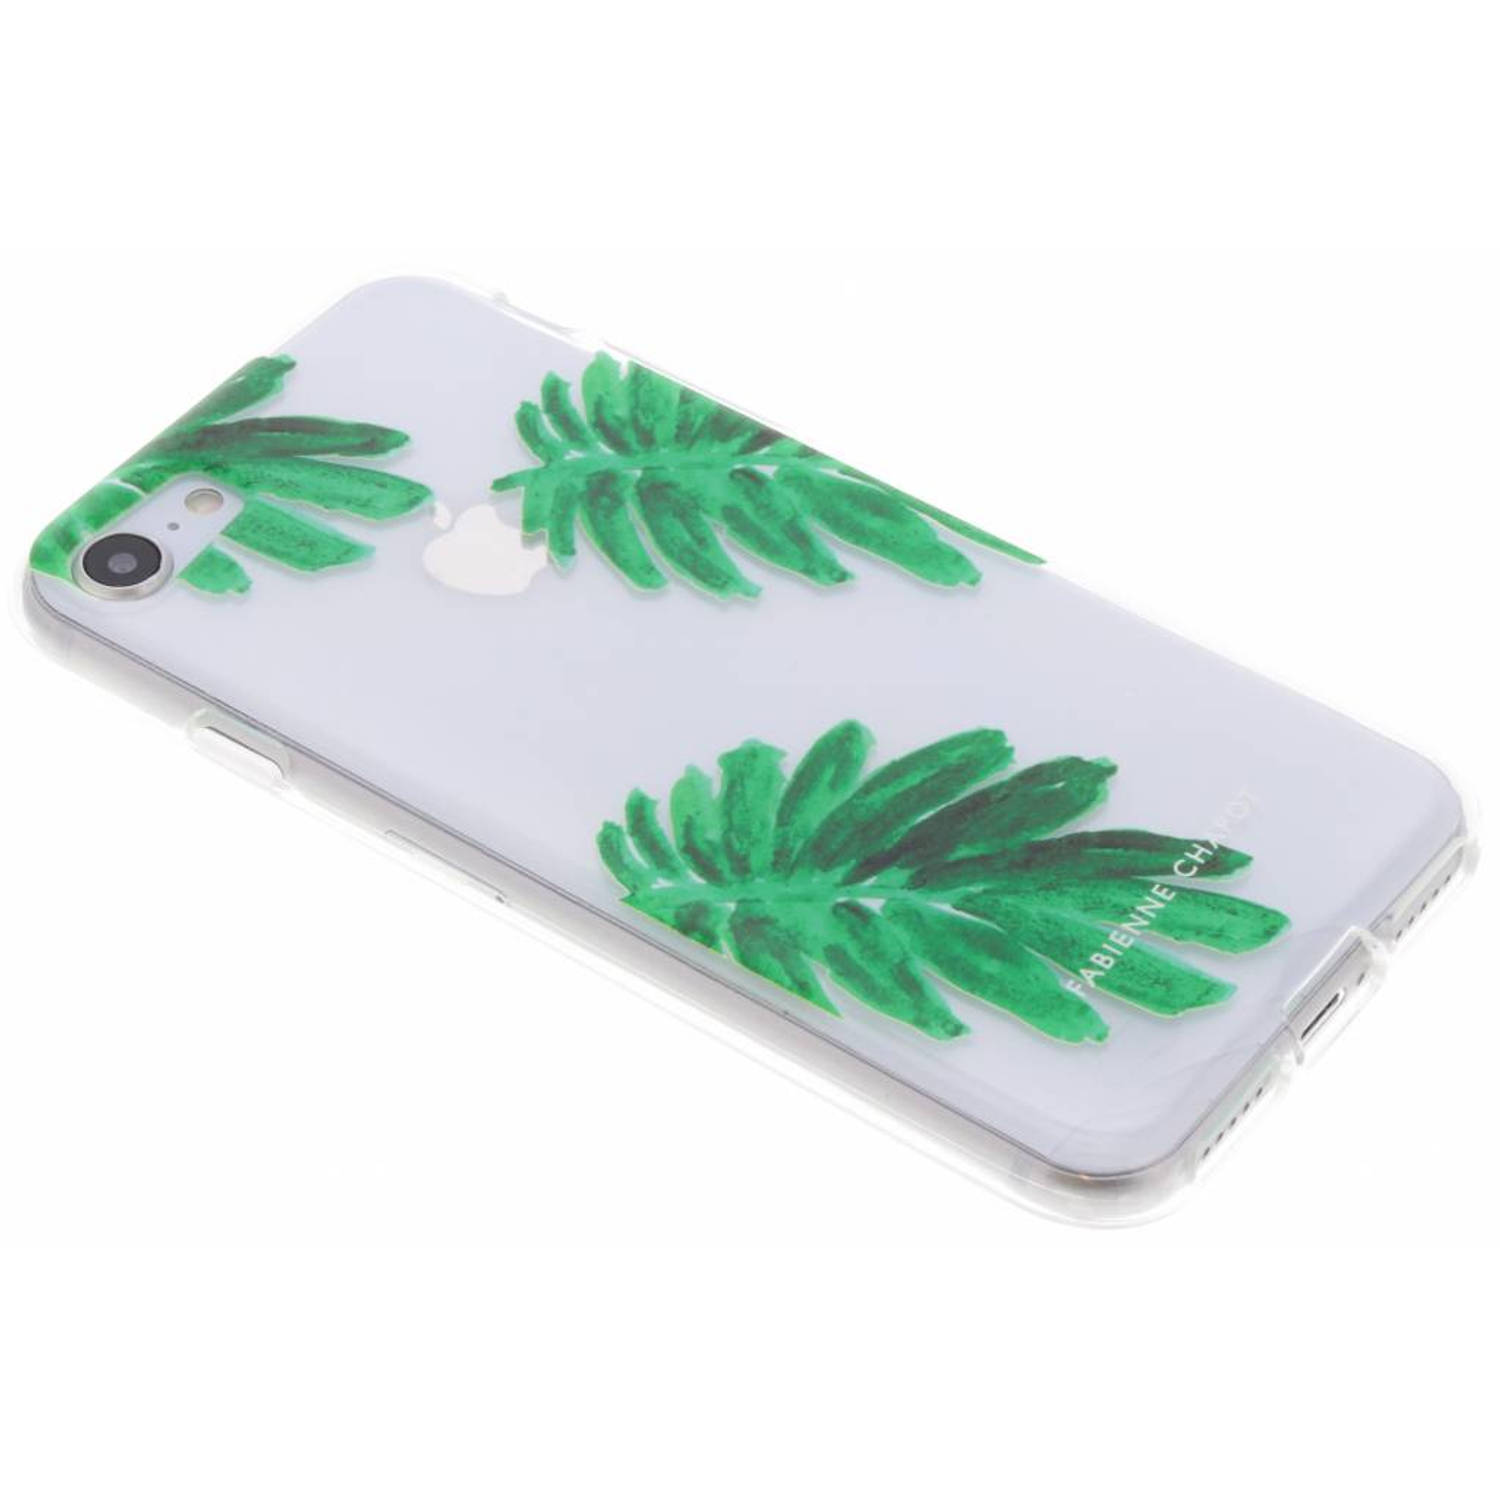 Citrus Leaf Softcase voor de iPhone 8 / 7